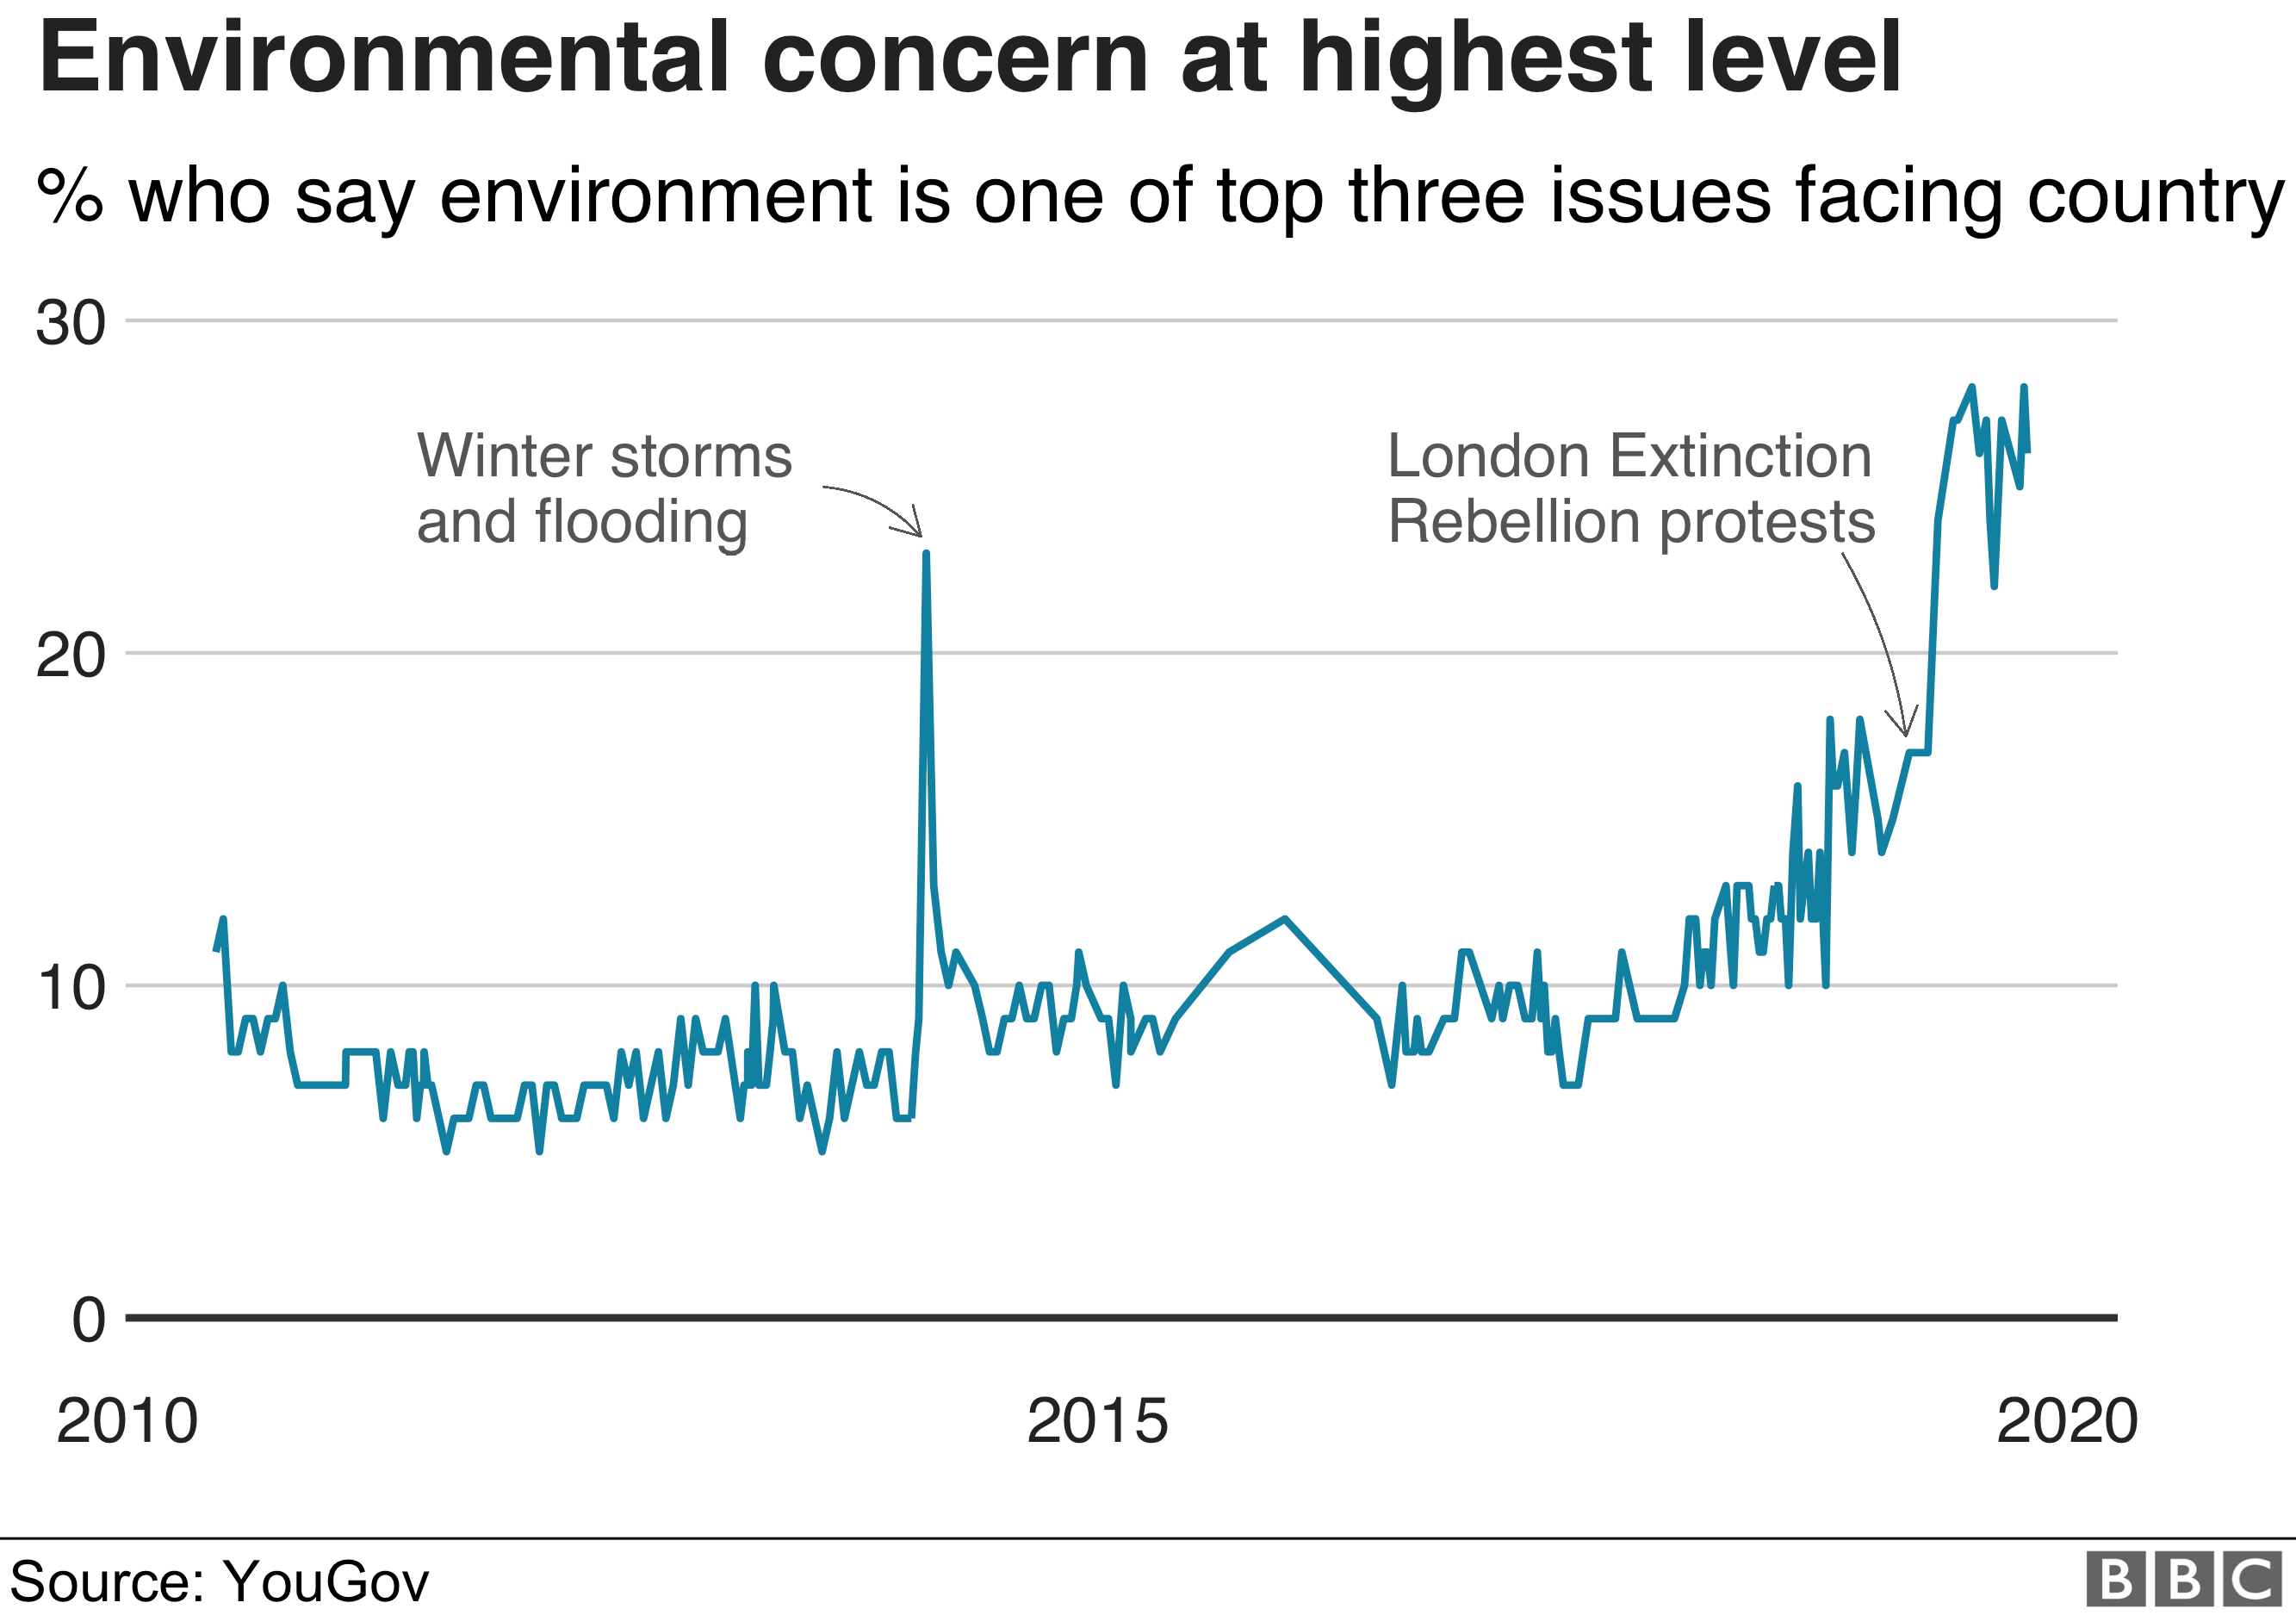 A graphic showing an increase in concern about the environment